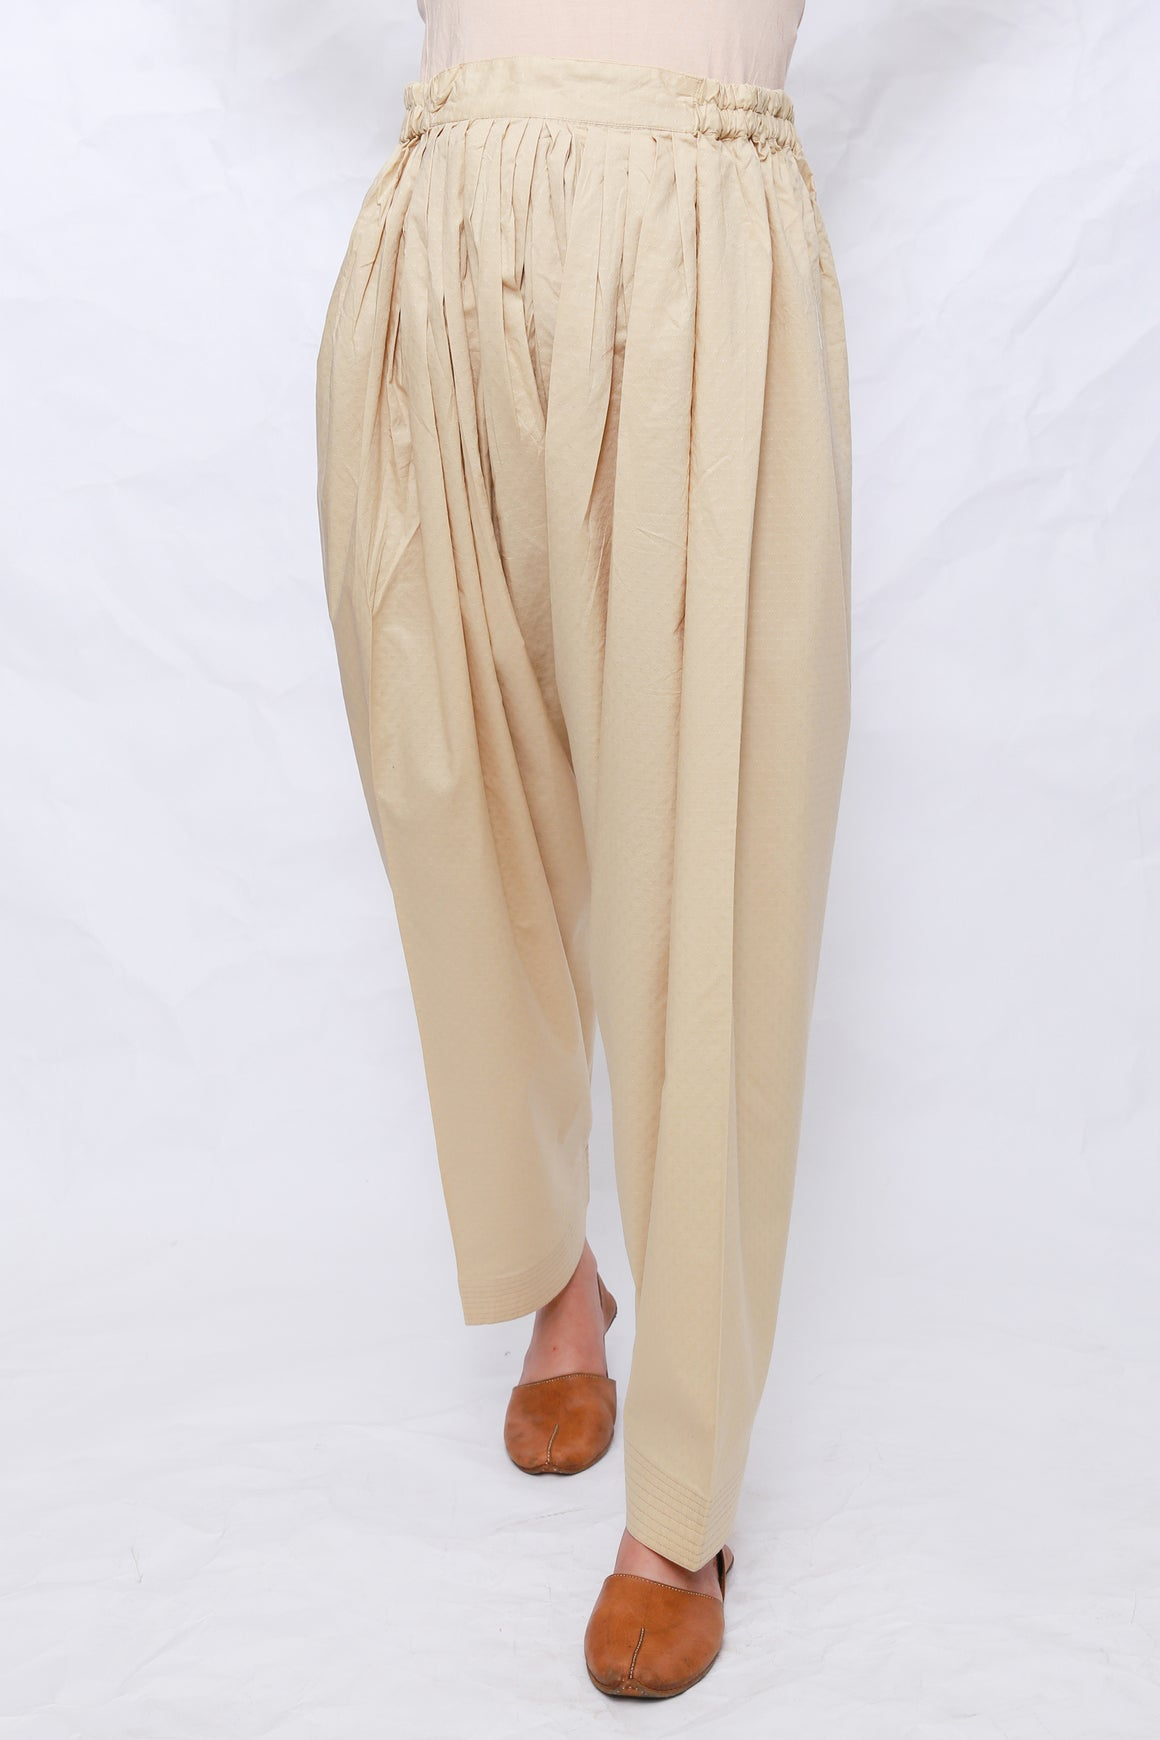 Generation - Beige  Textured Shalwar